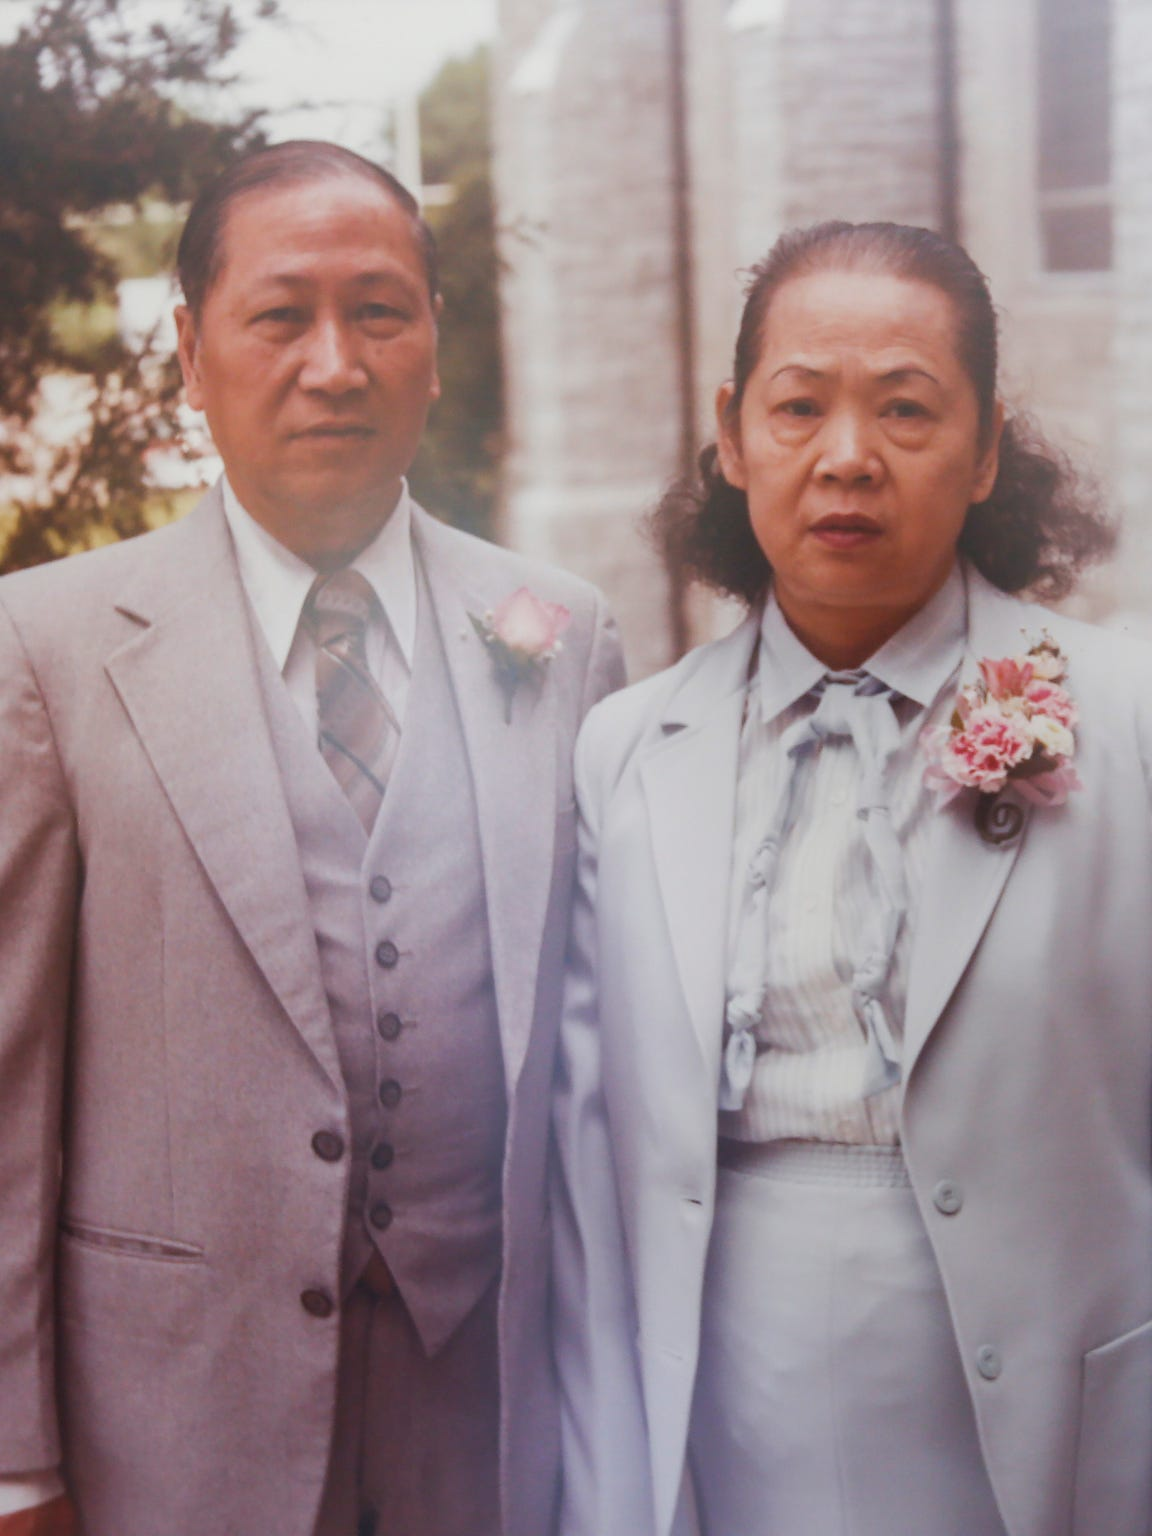 David Leong and his wife Shau Ngor, who died in 1997.